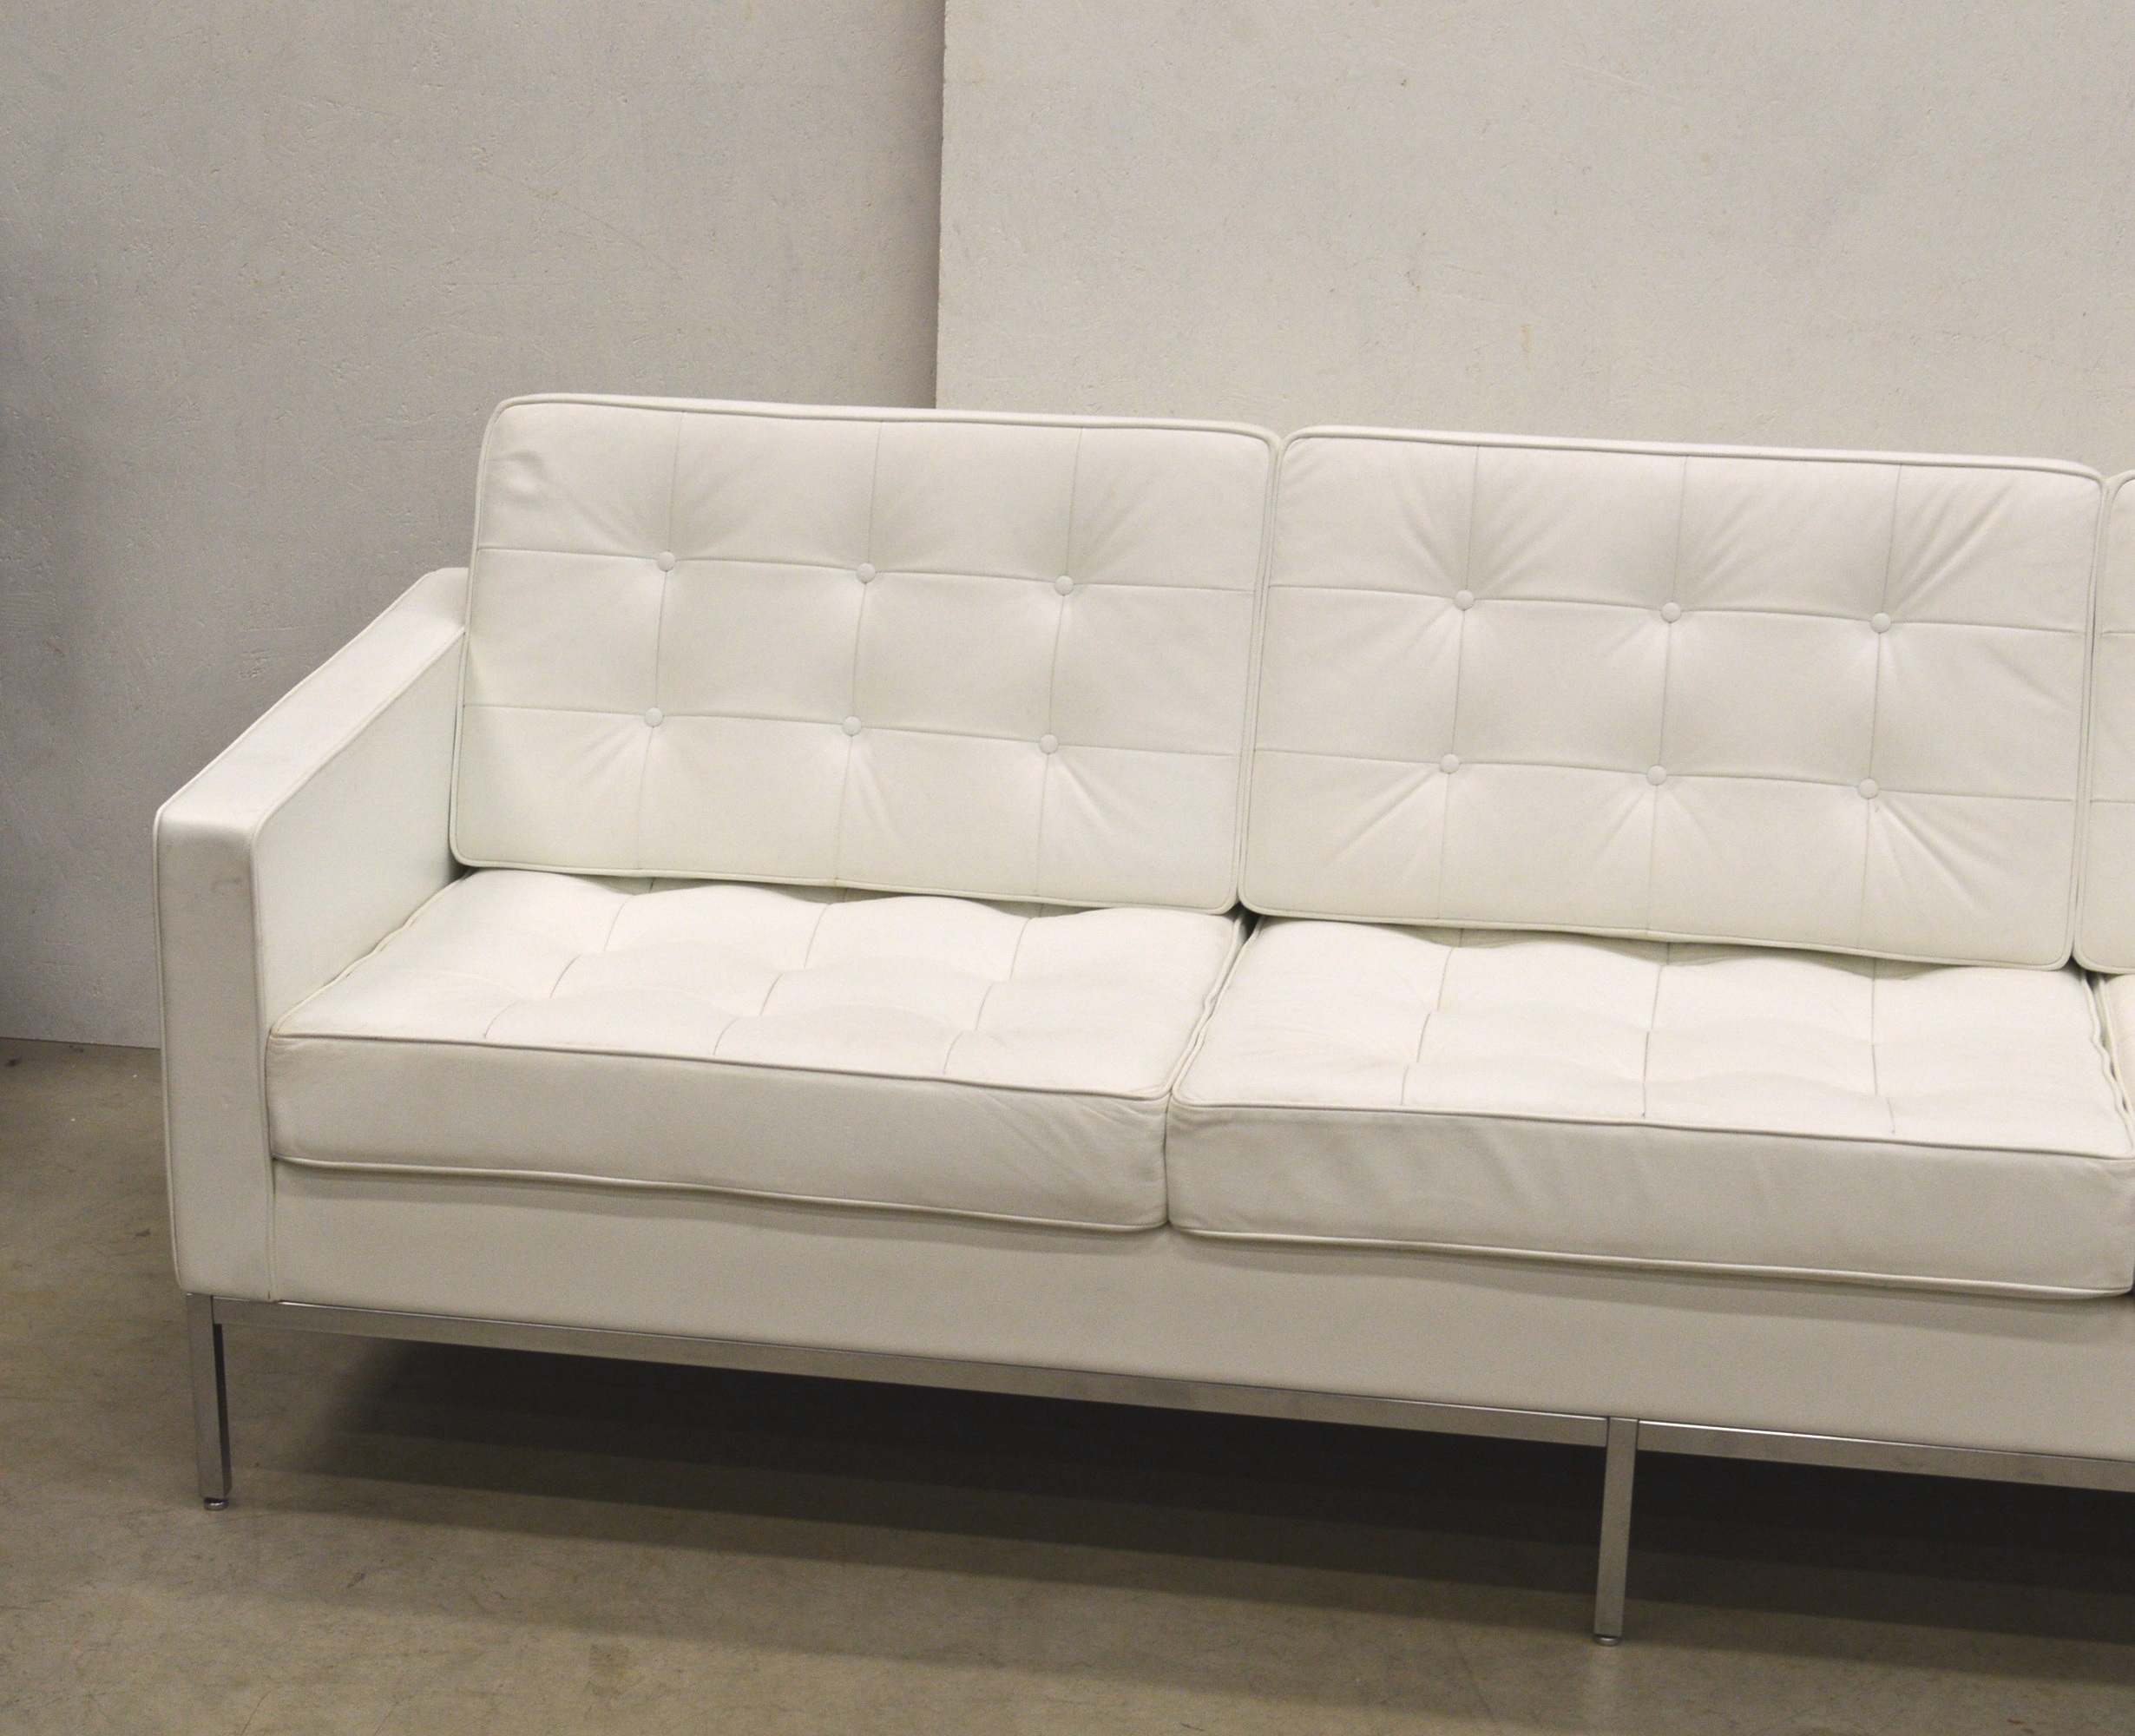 Florence Knoll Relax White Leather Sofaknoll Inside Florence Knoll Leather Sofas (View 1 of 15)